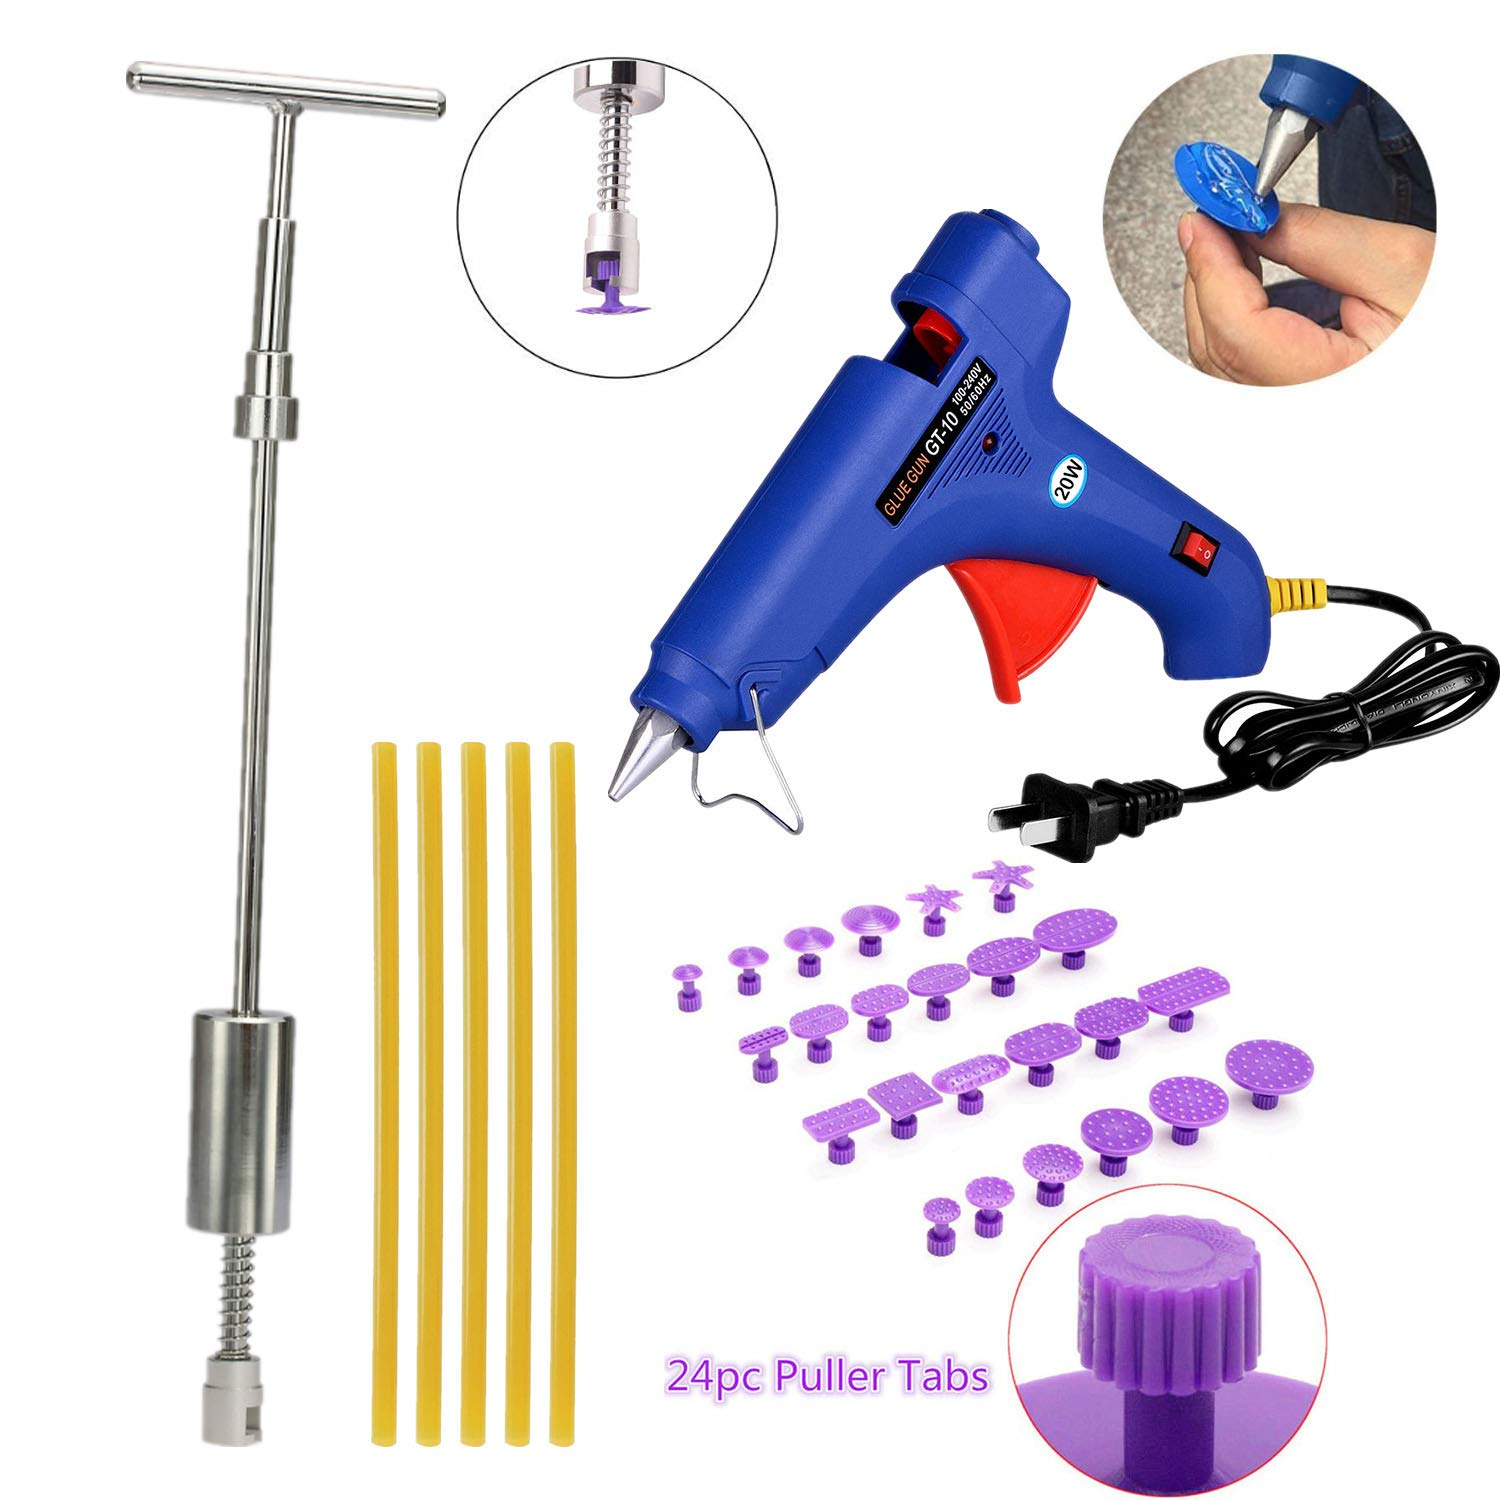 VOLOL SMLIFE DIY Paintless Dent Removal PDR Tools Dent Puller Kit Pops a Slide Hammer with 24pcs Pulling Tabs for Automobile Body Motorcycle Refrigerator Washing Machine